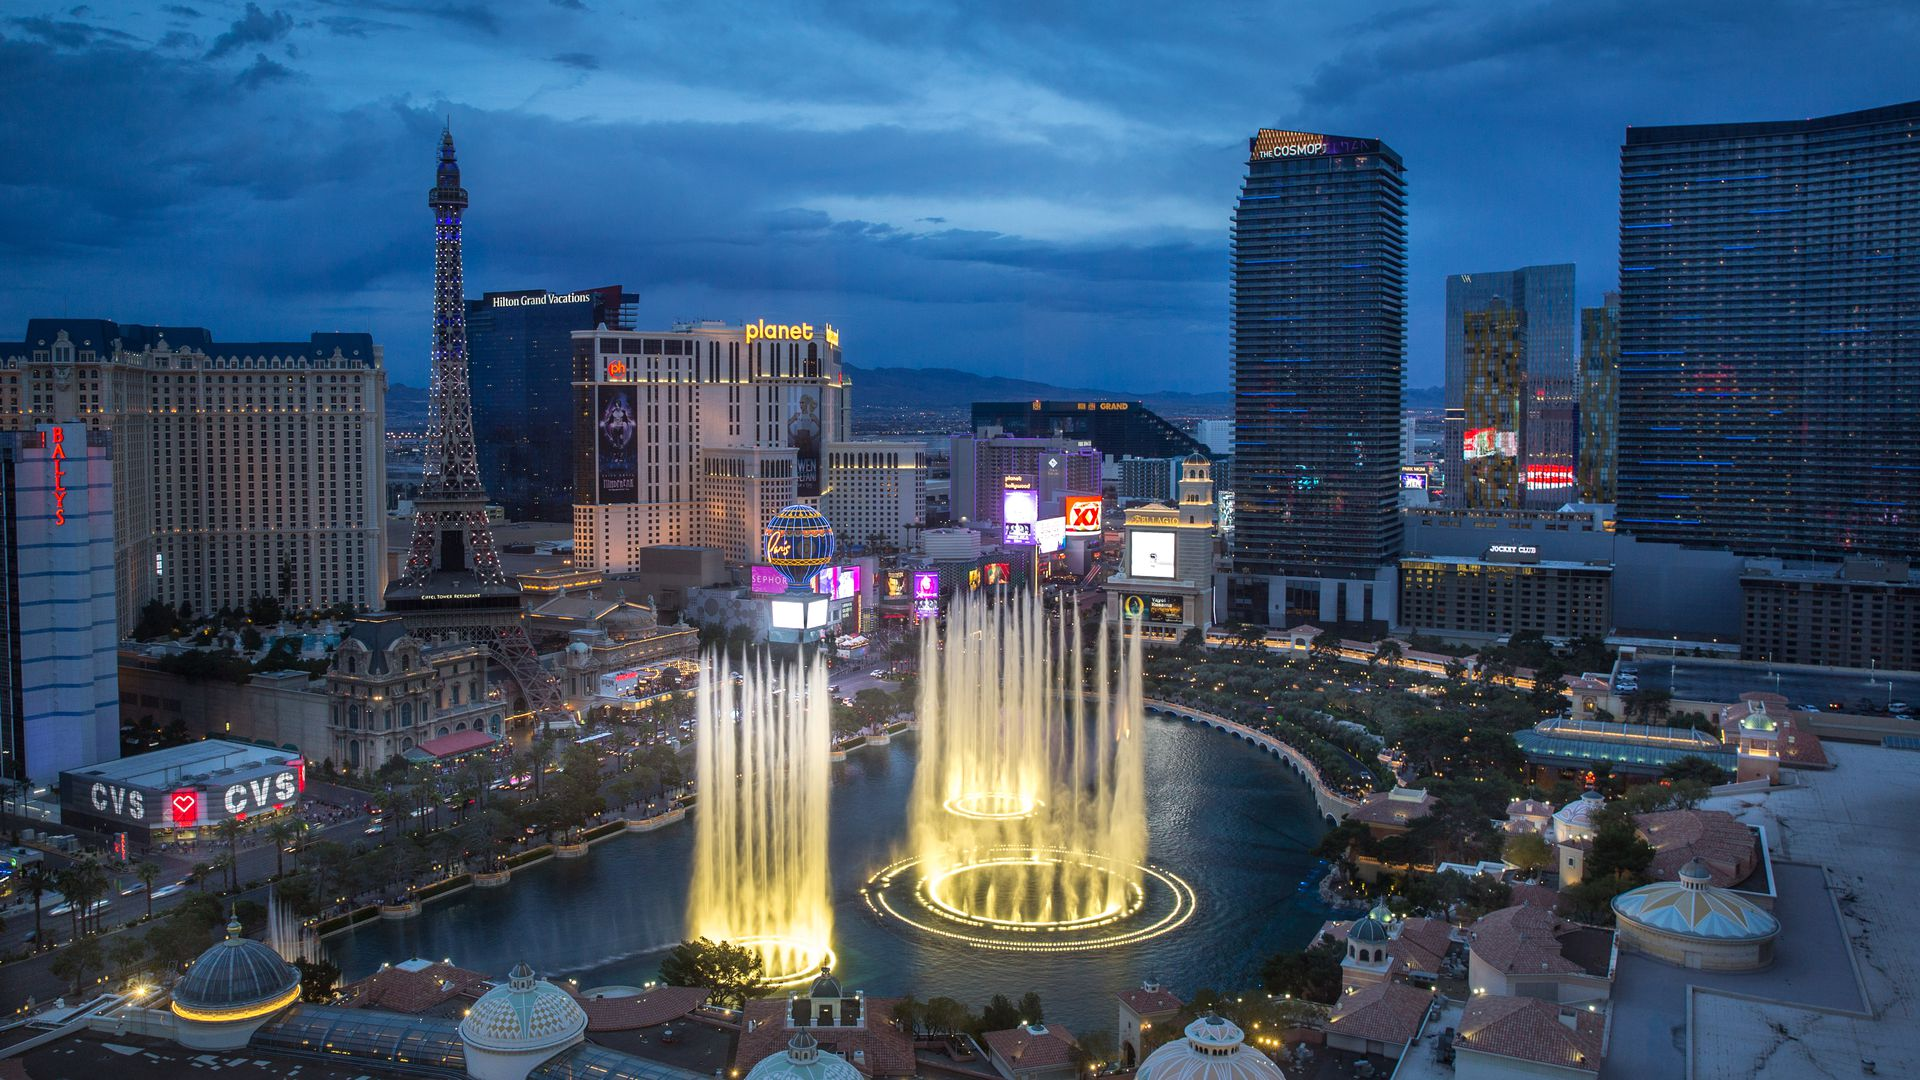 MGM agrees to sell Bellagio for $4.25 billion